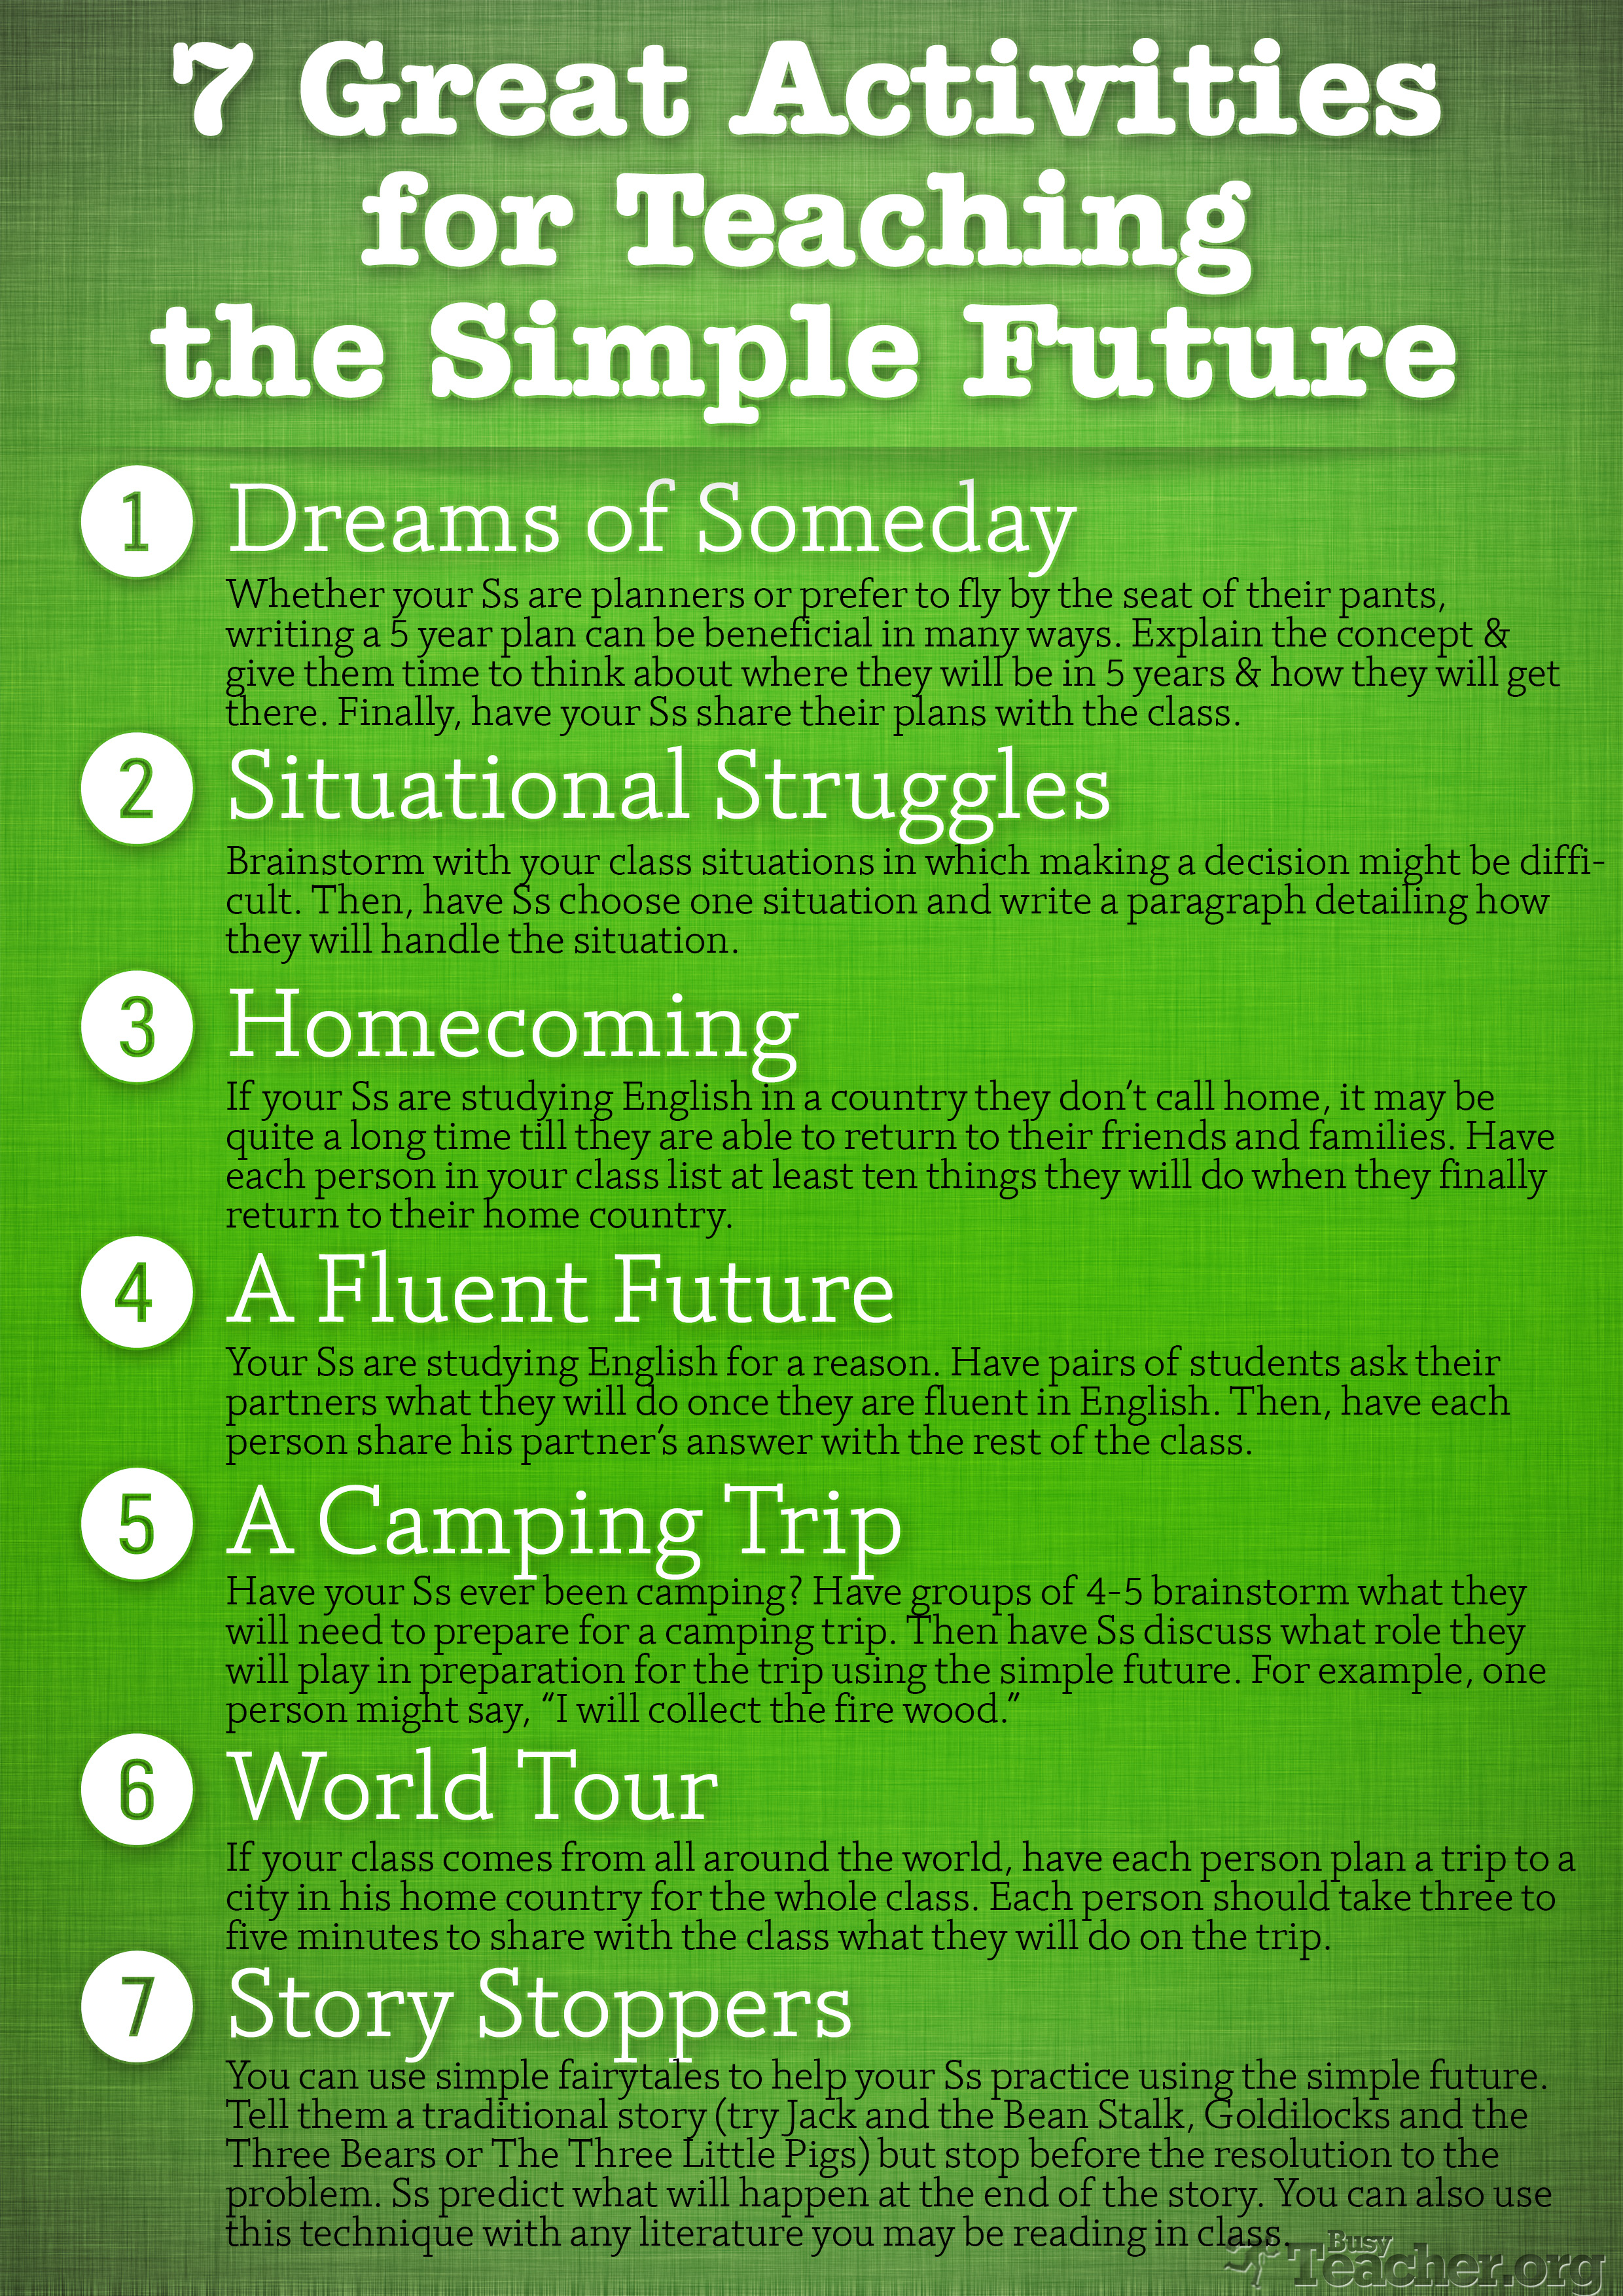 Poster 7 great activities to teach the simple future